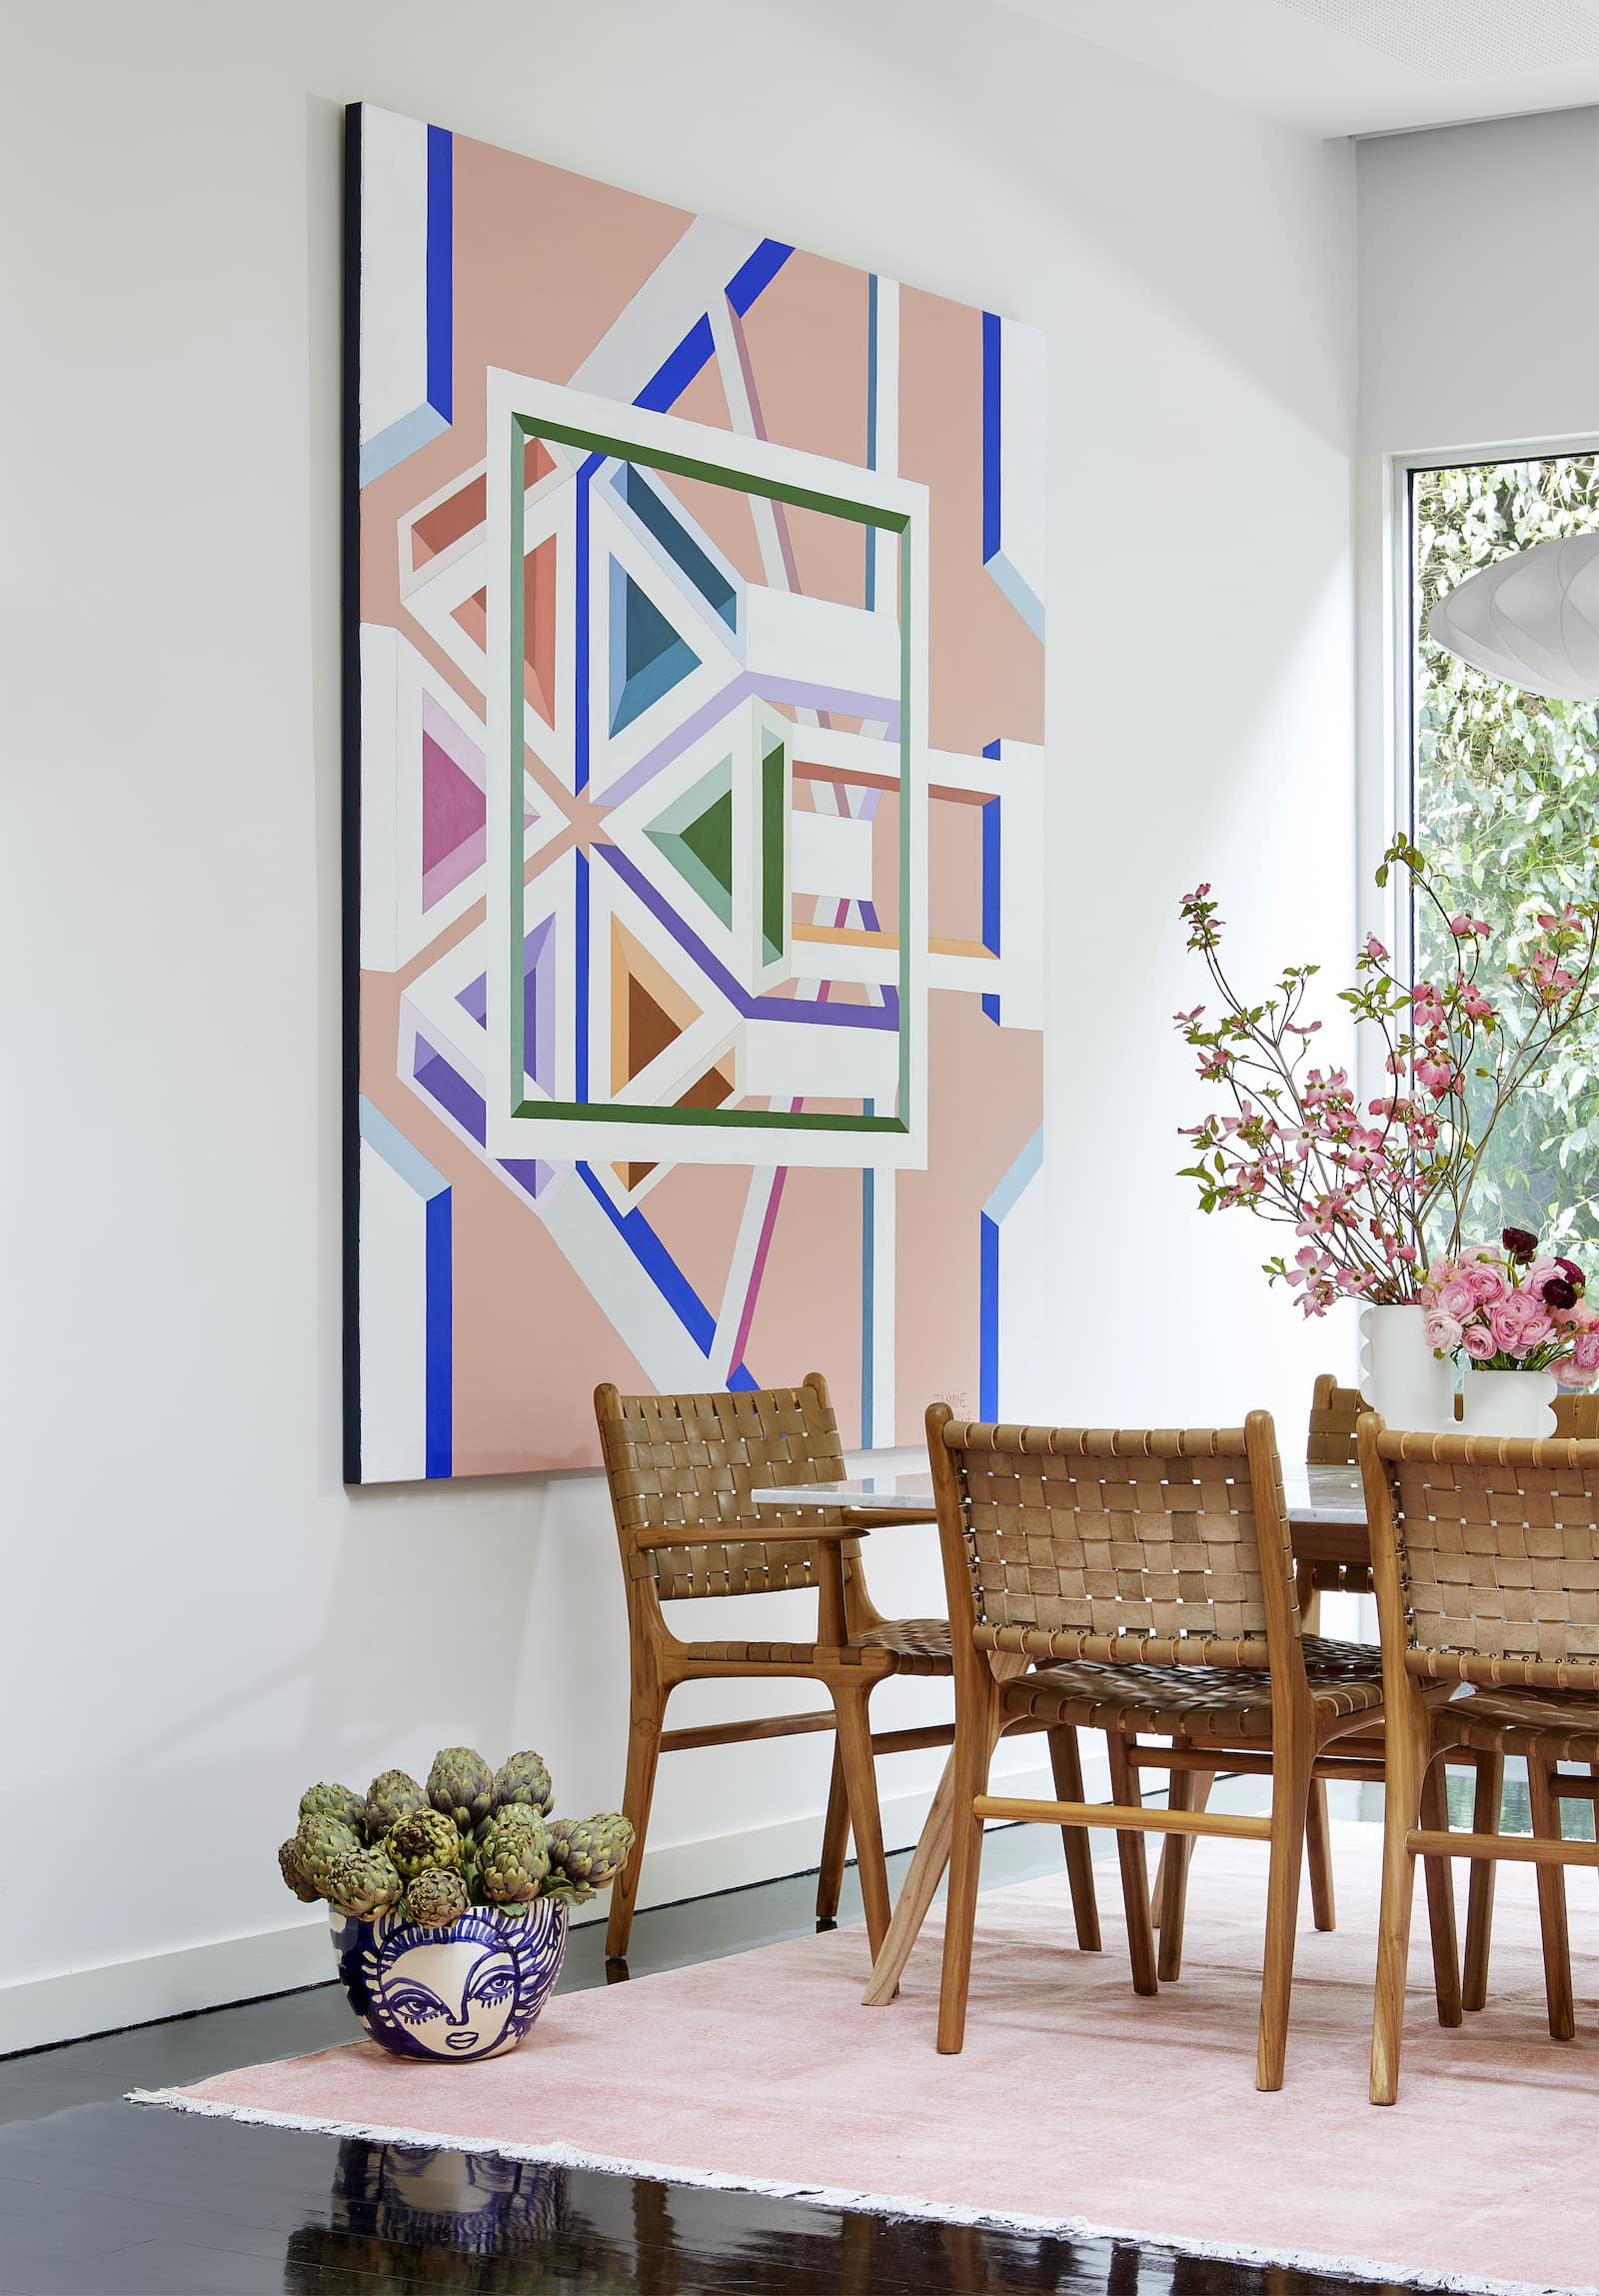 fenton and fenton large abstract pink geometric art in dining room